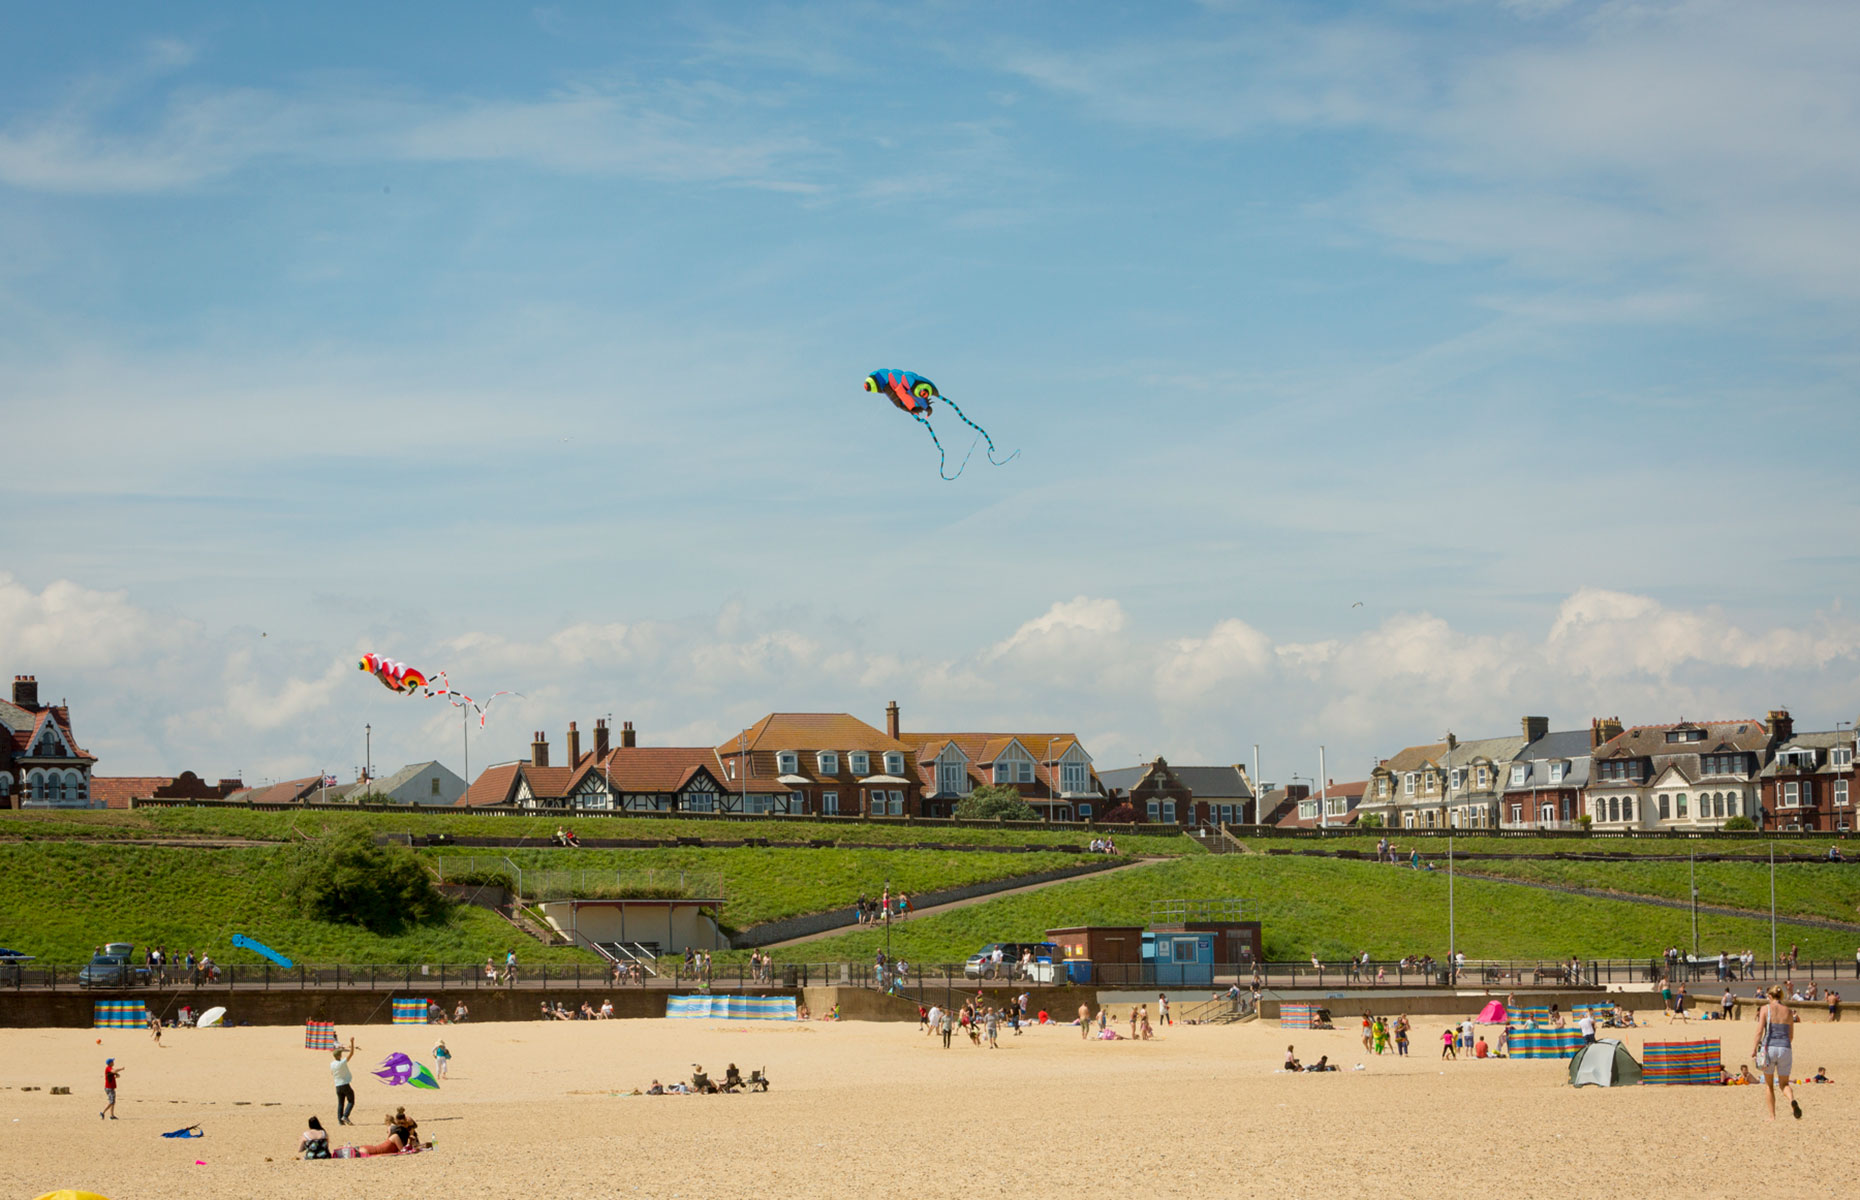 Gorleston-on-Sea's golden sandy beach on a sunny day with kites and sunbathers (Image: Visit Great Yarmouth)